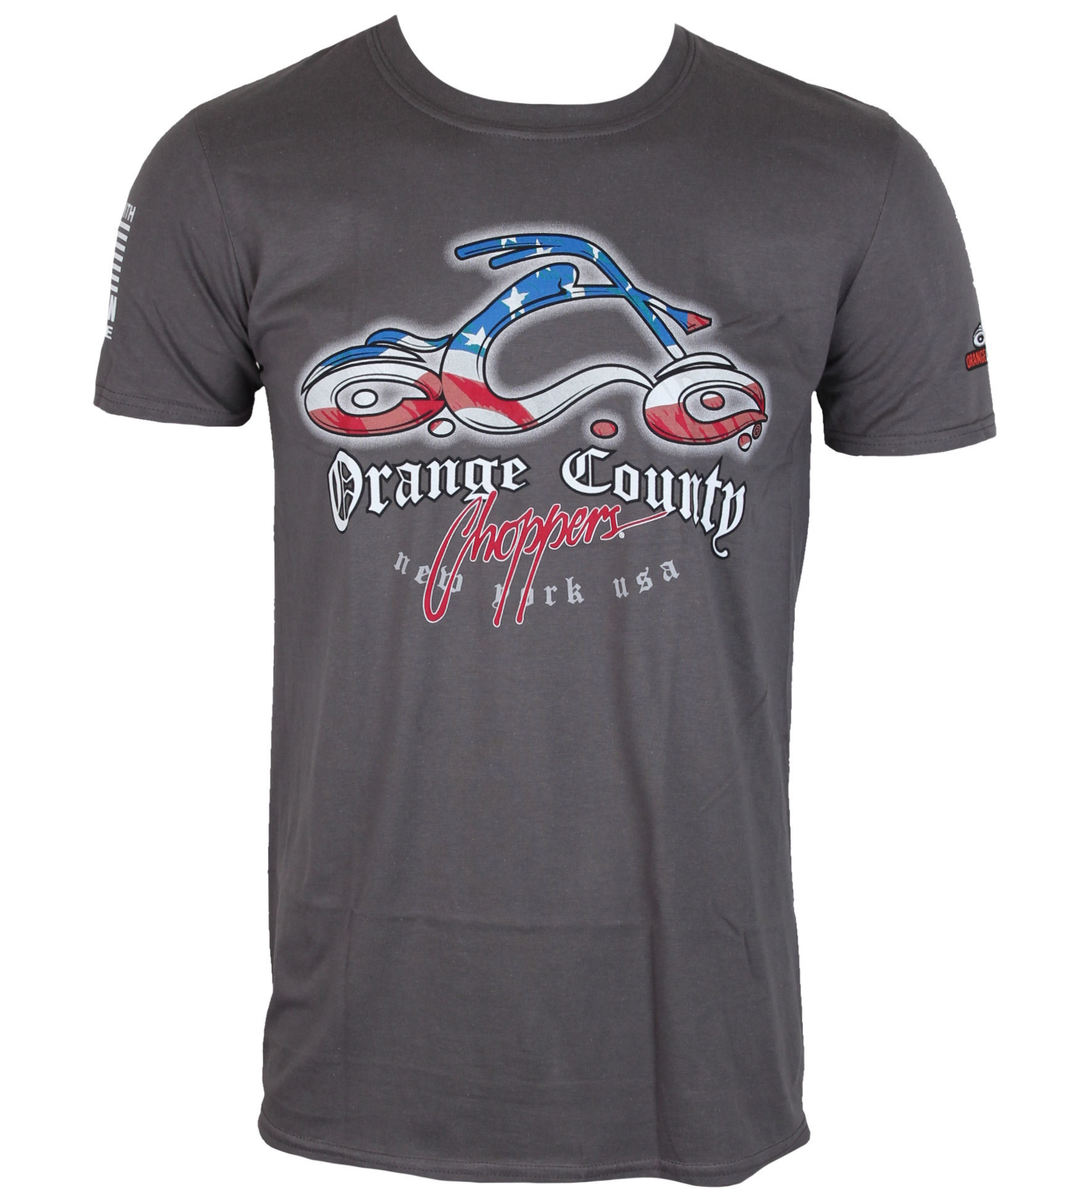 tričko pánské ORANGE COUNTY CHOPPERS - Patriotic - Charcoal - OCCTS03246